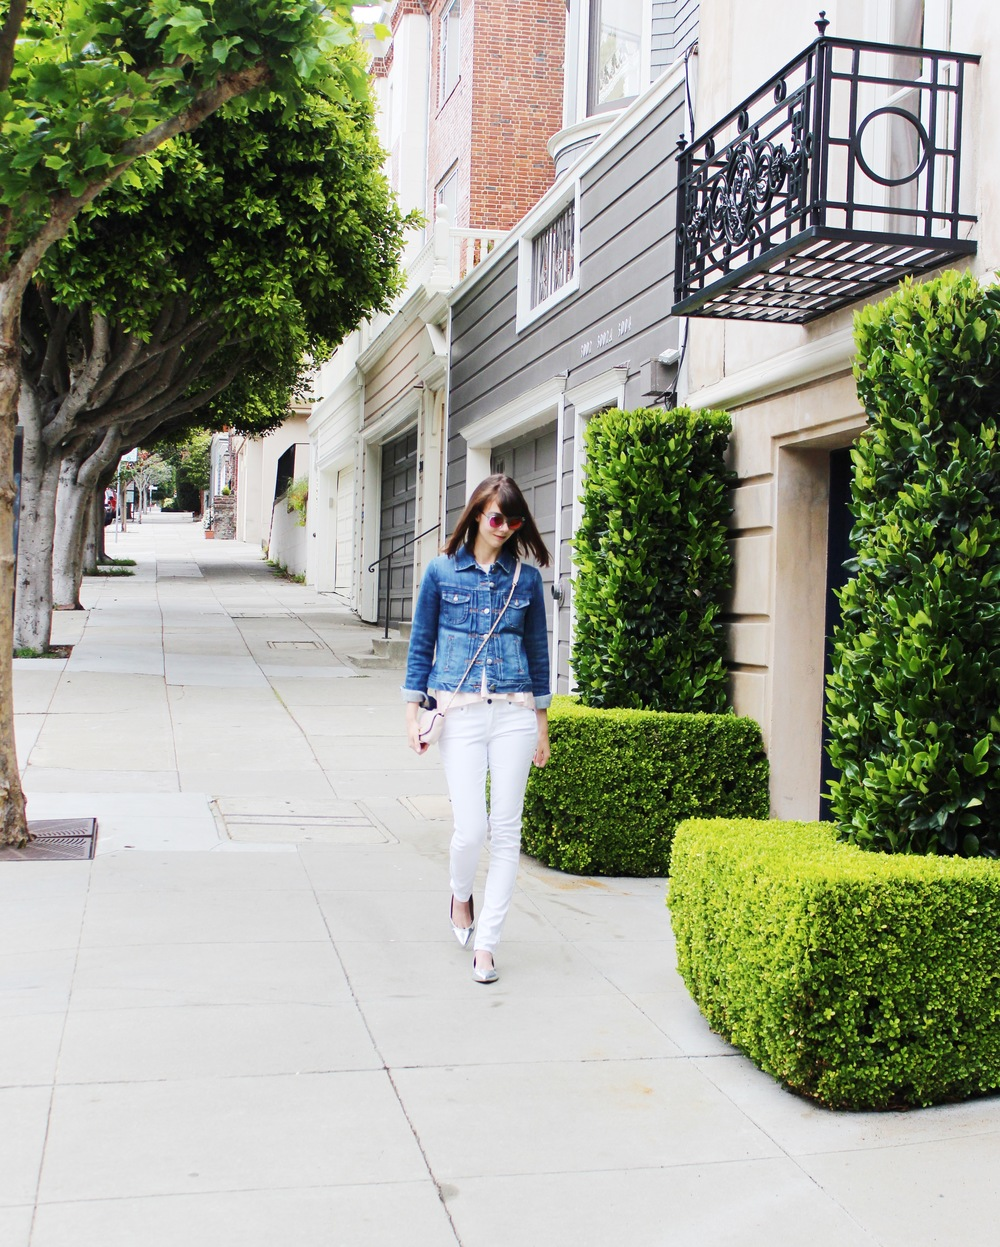 A Touch of Blush - Walking Through Pacific Heights | Sundays and Somedays